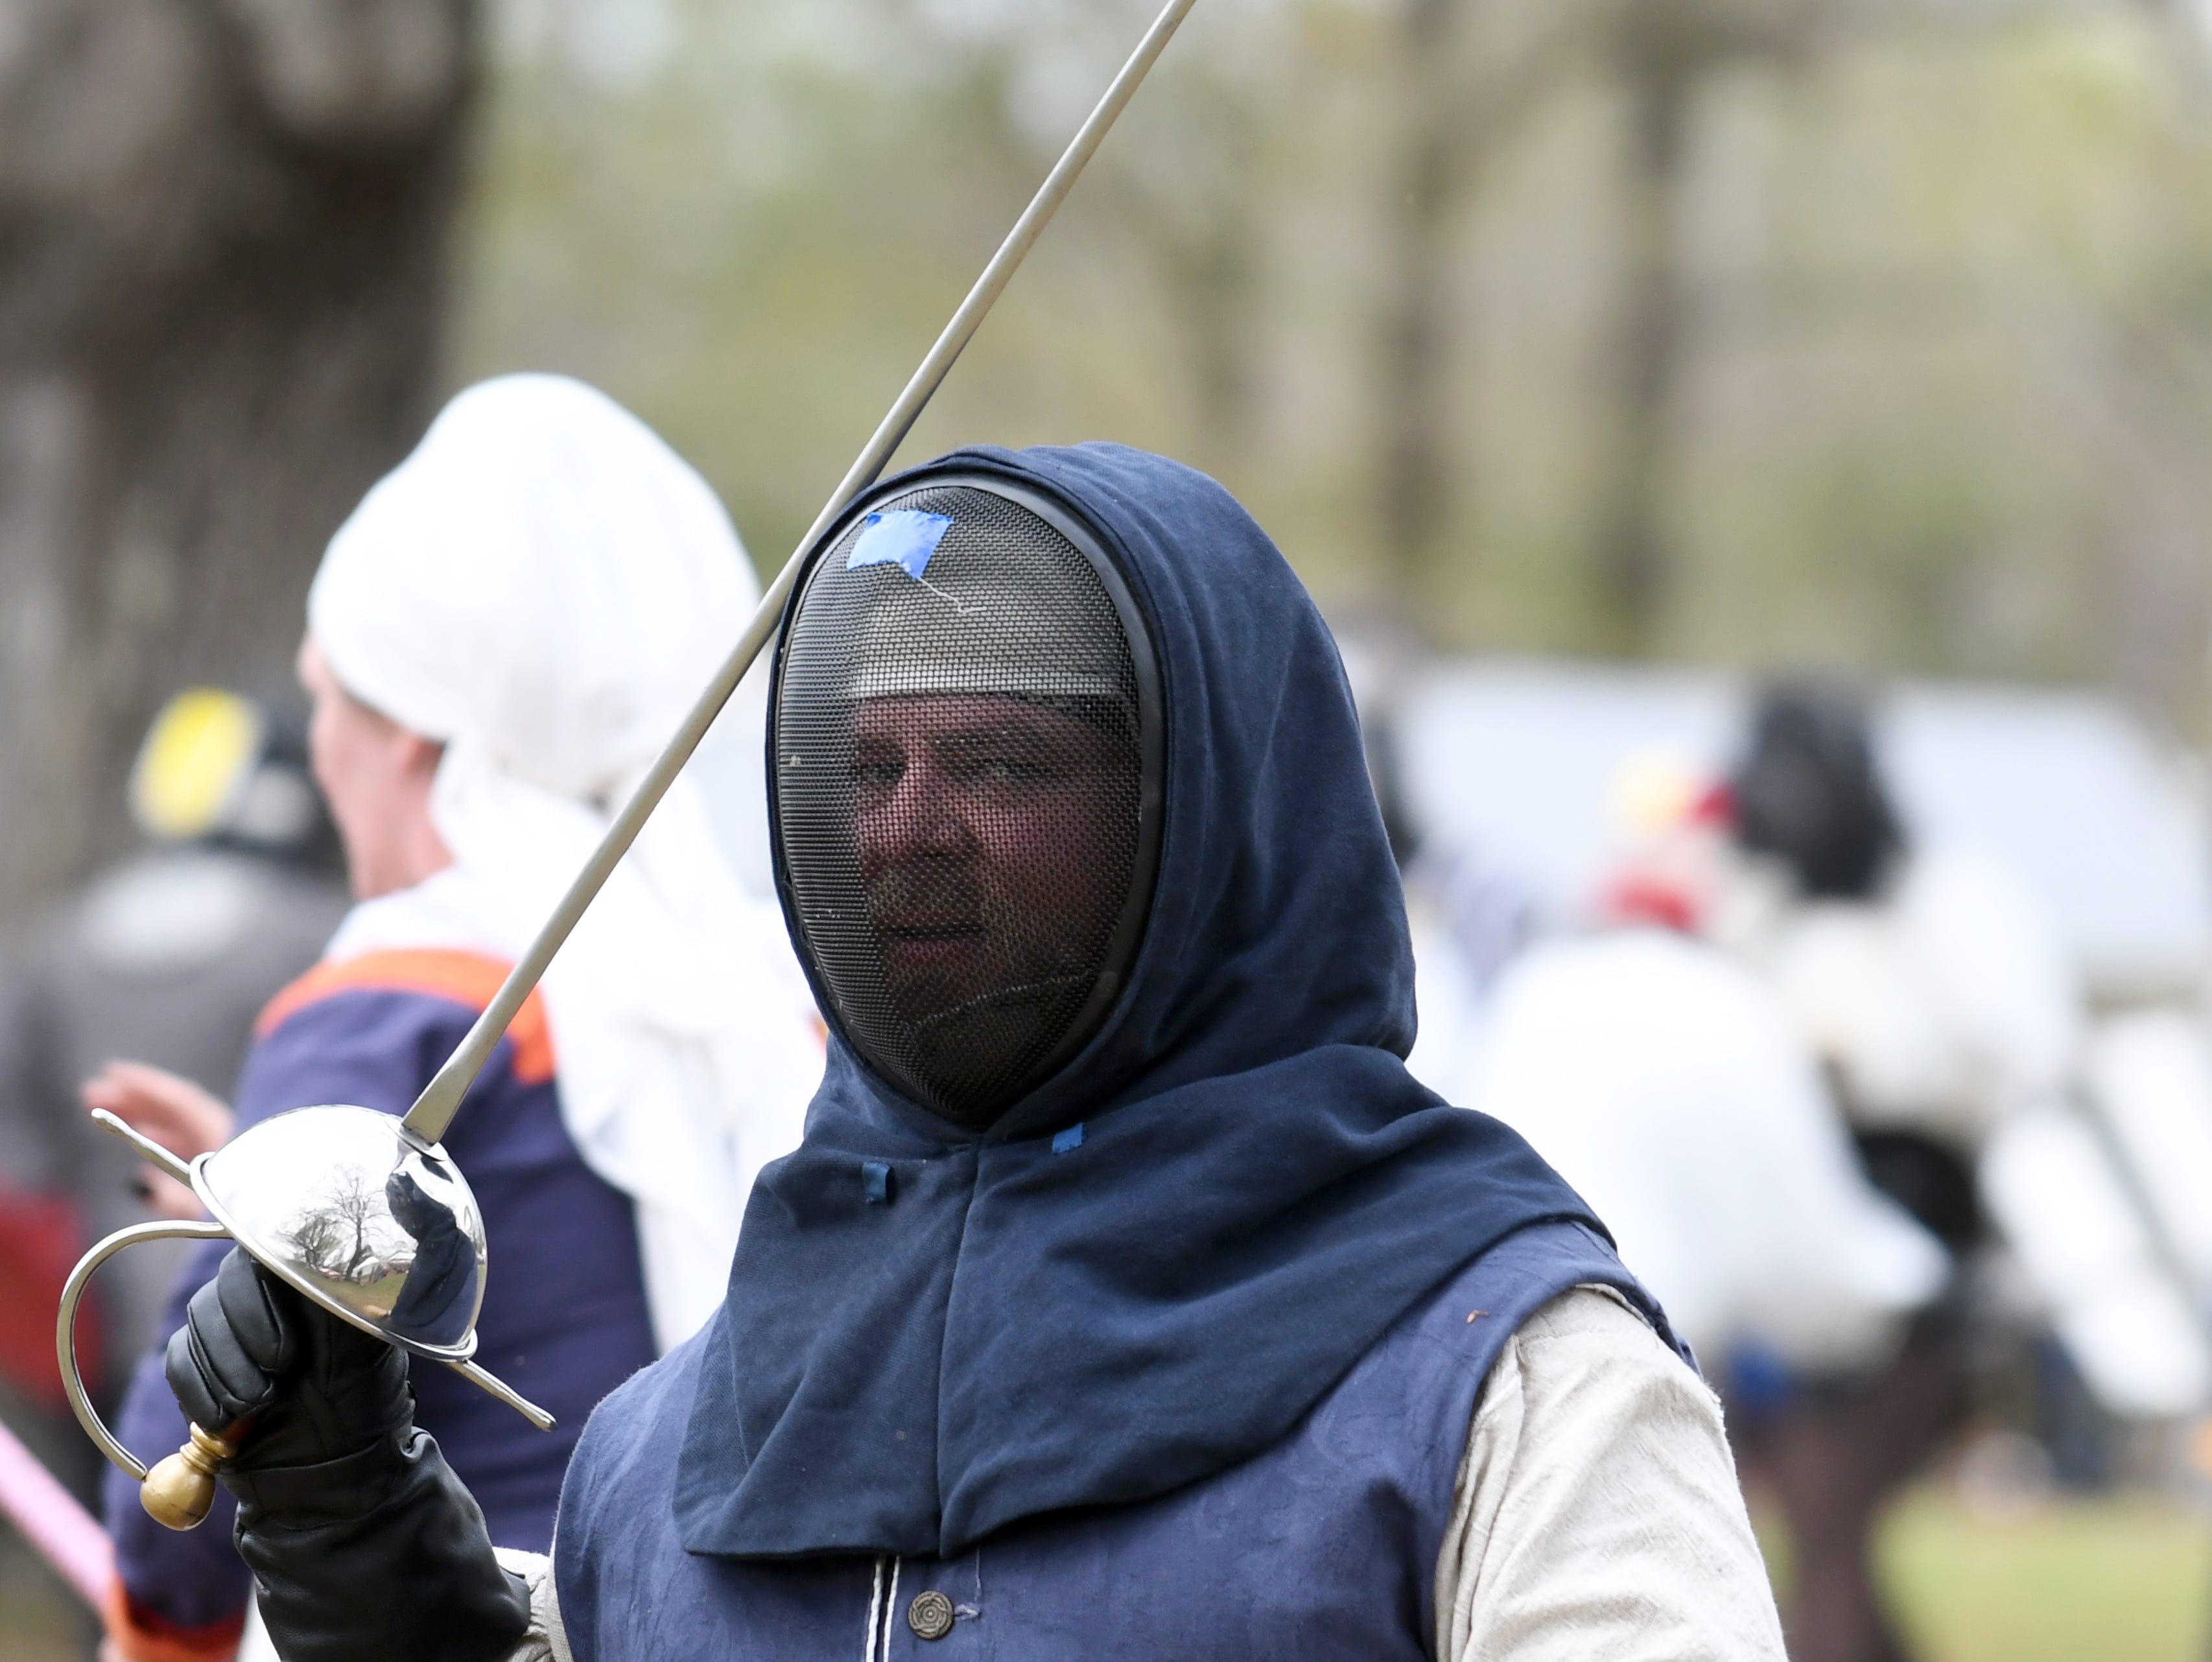 Participants battle in a fencing match during Gulf Wars XXVIII at King's Arrow Ranch in Lumberton on Monday. March 11, 2019.